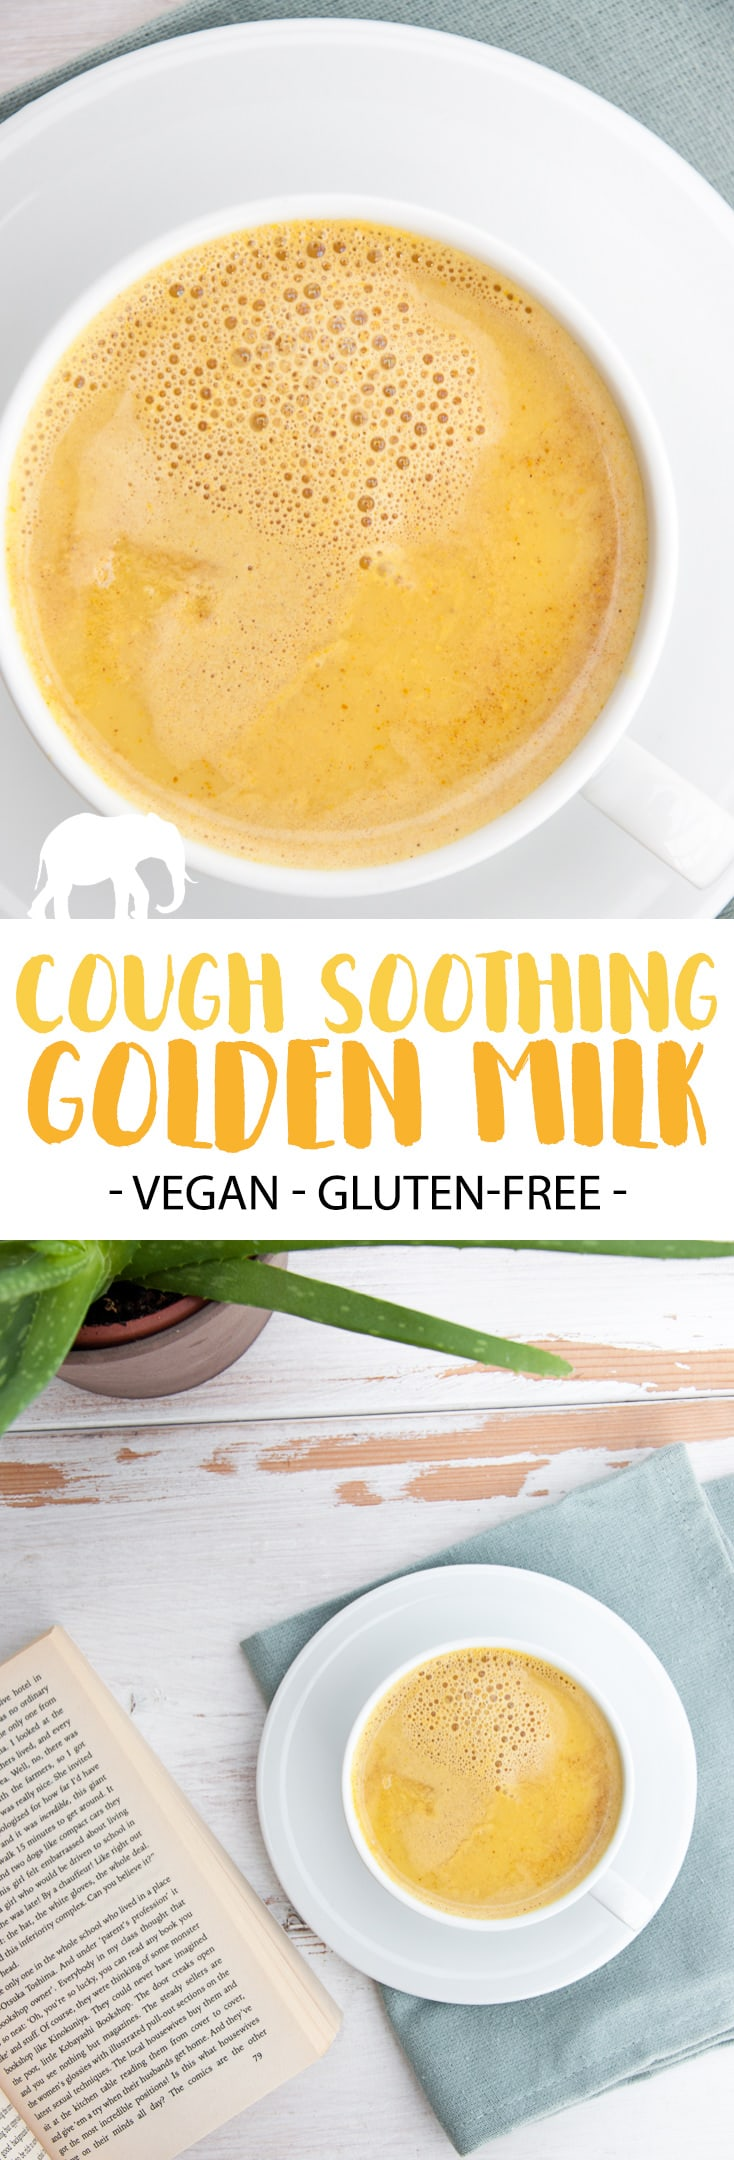 Cough soothing golden milk elephantastic vegan my favorite cough remedies are golden milk and a good book youve got forumfinder Choice Image